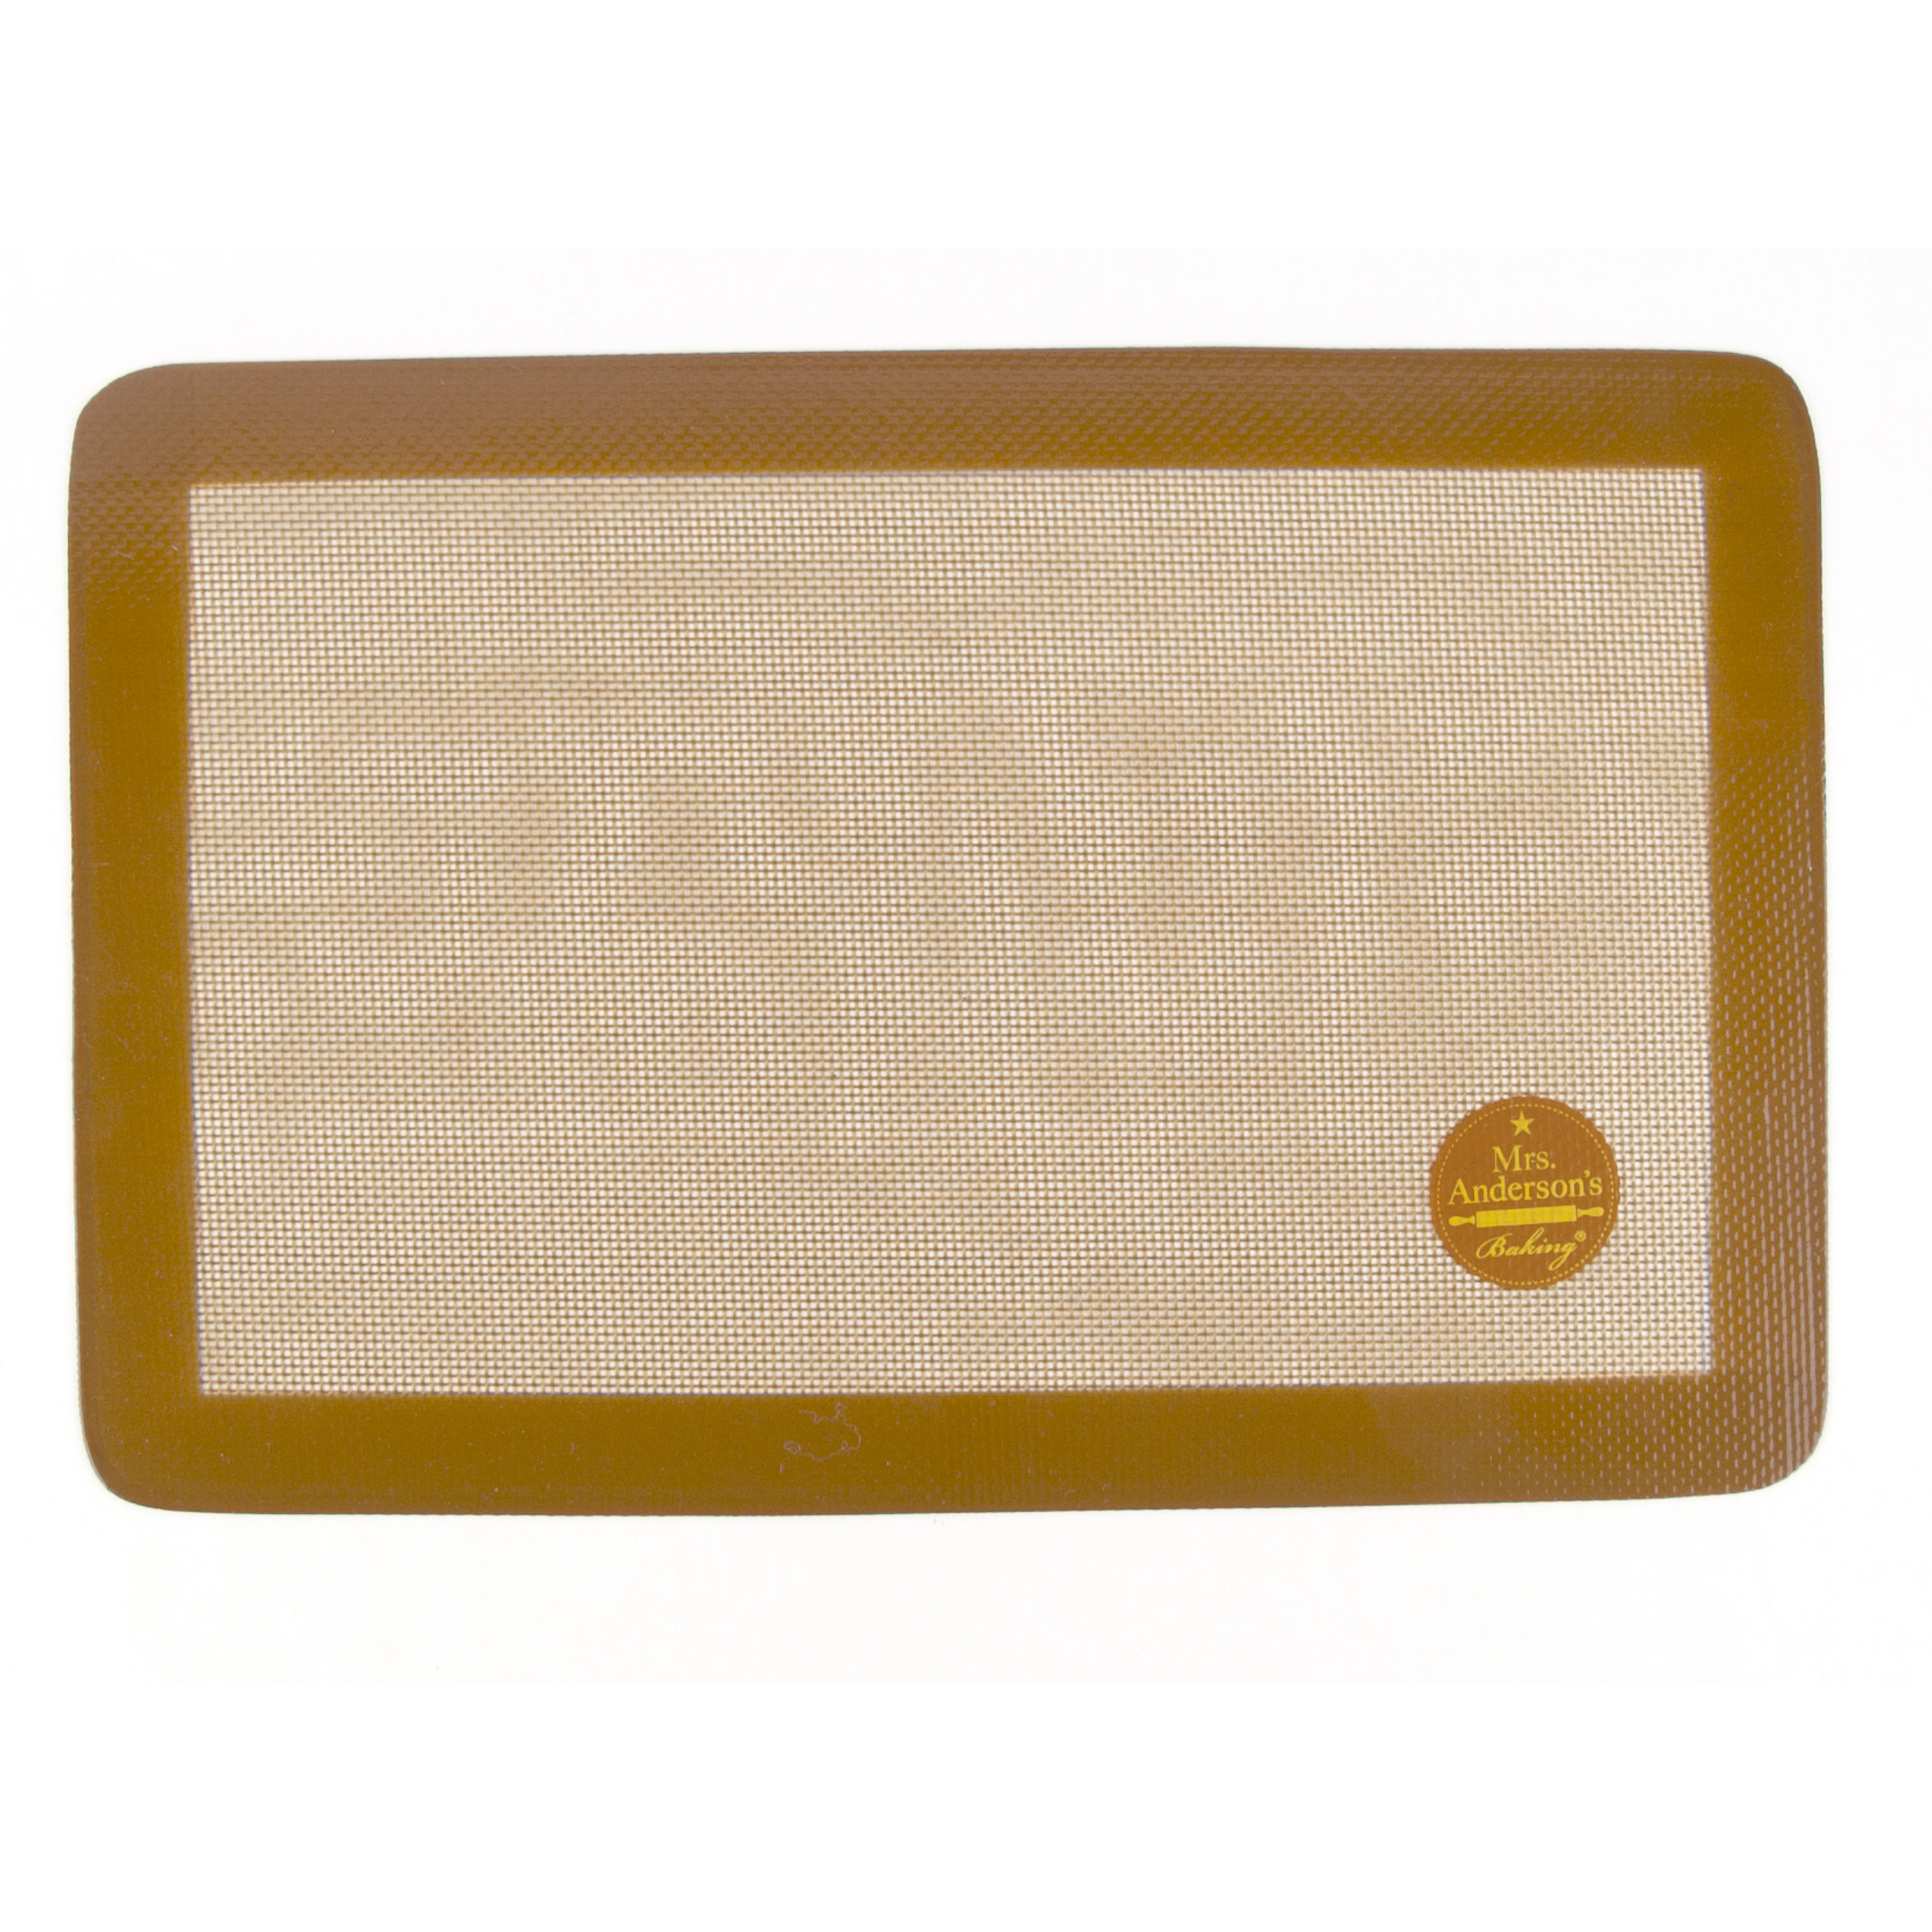 Mrs. Anderson's Baking Silicone Non-Stick Jelly Roll Mat